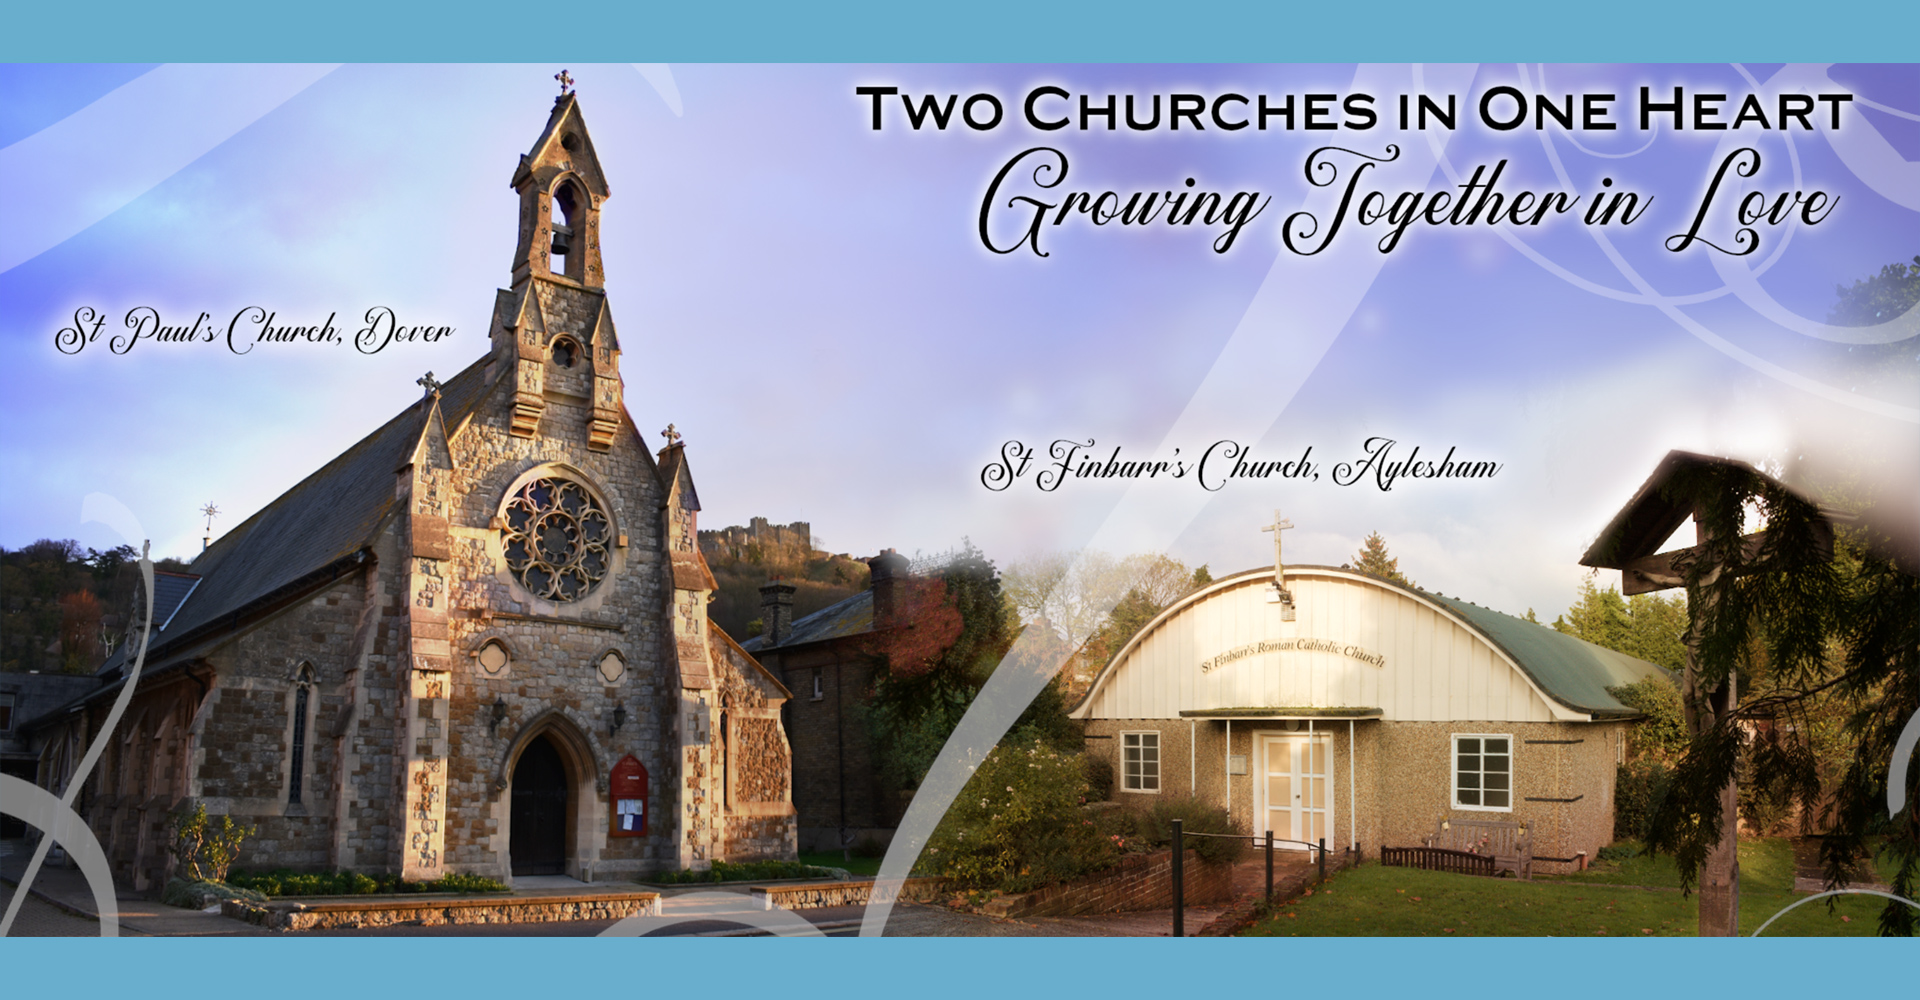 Two churches in one heart